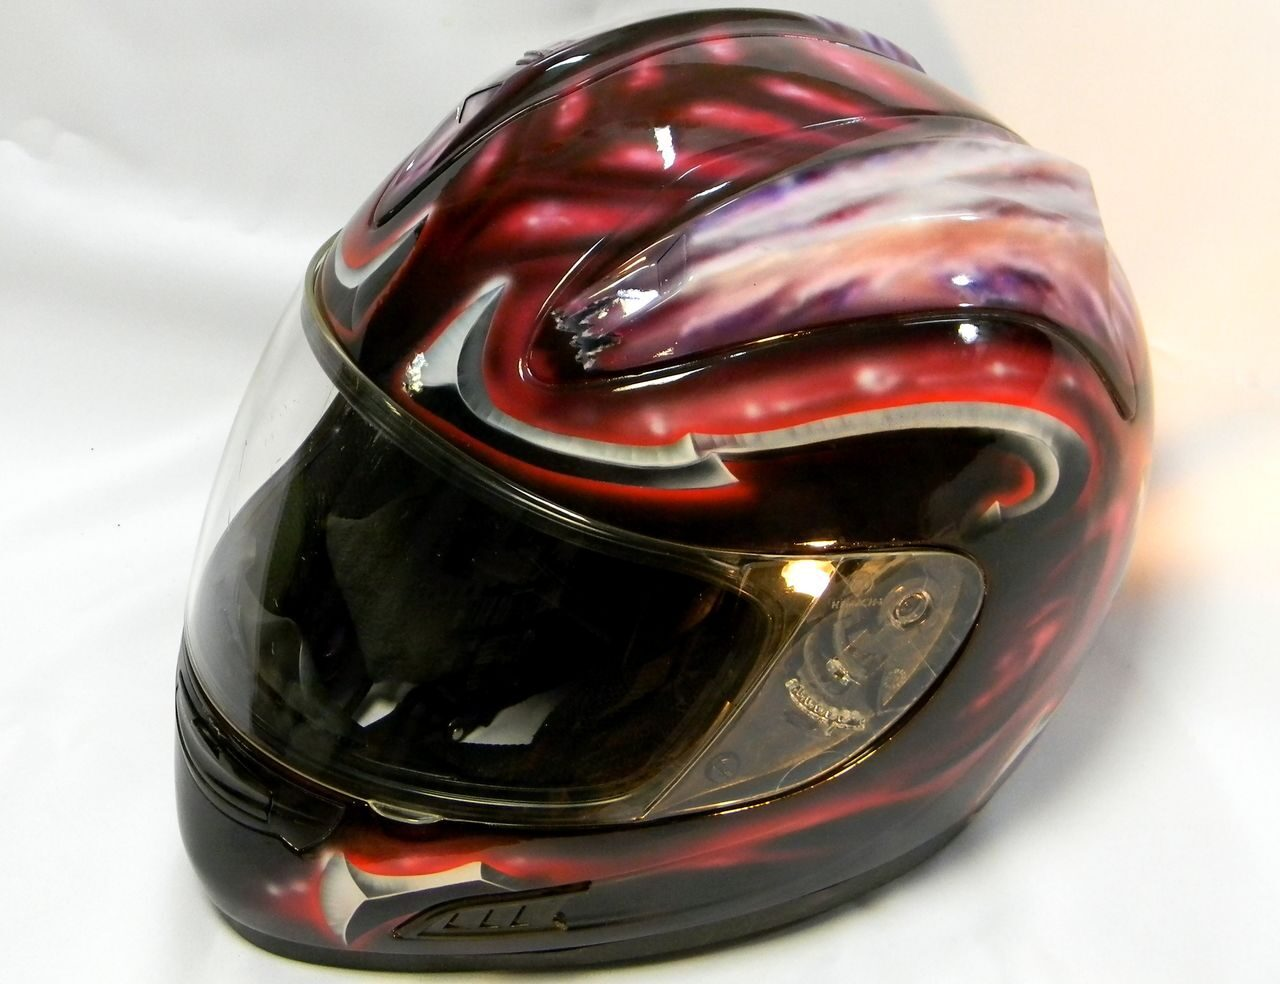 Black and Red Devil helmet